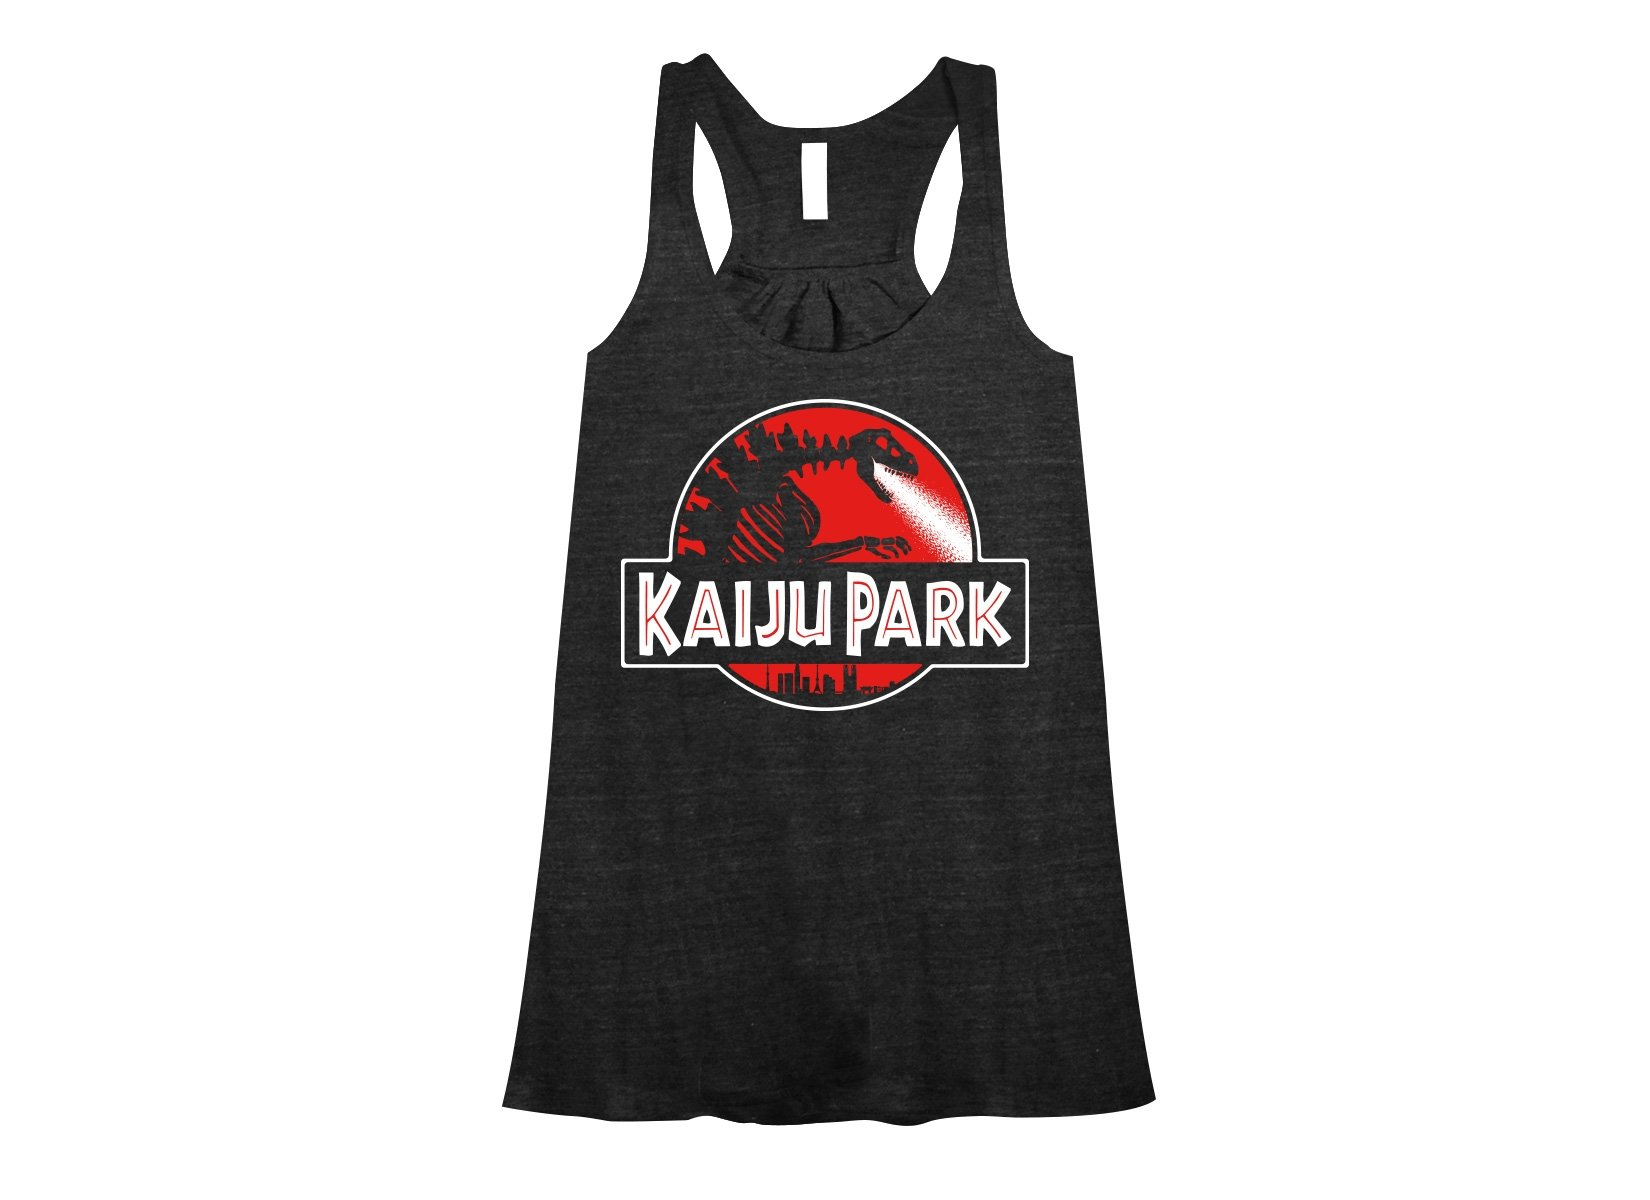 Kaiju Park on Womens Tanks T-Shirt